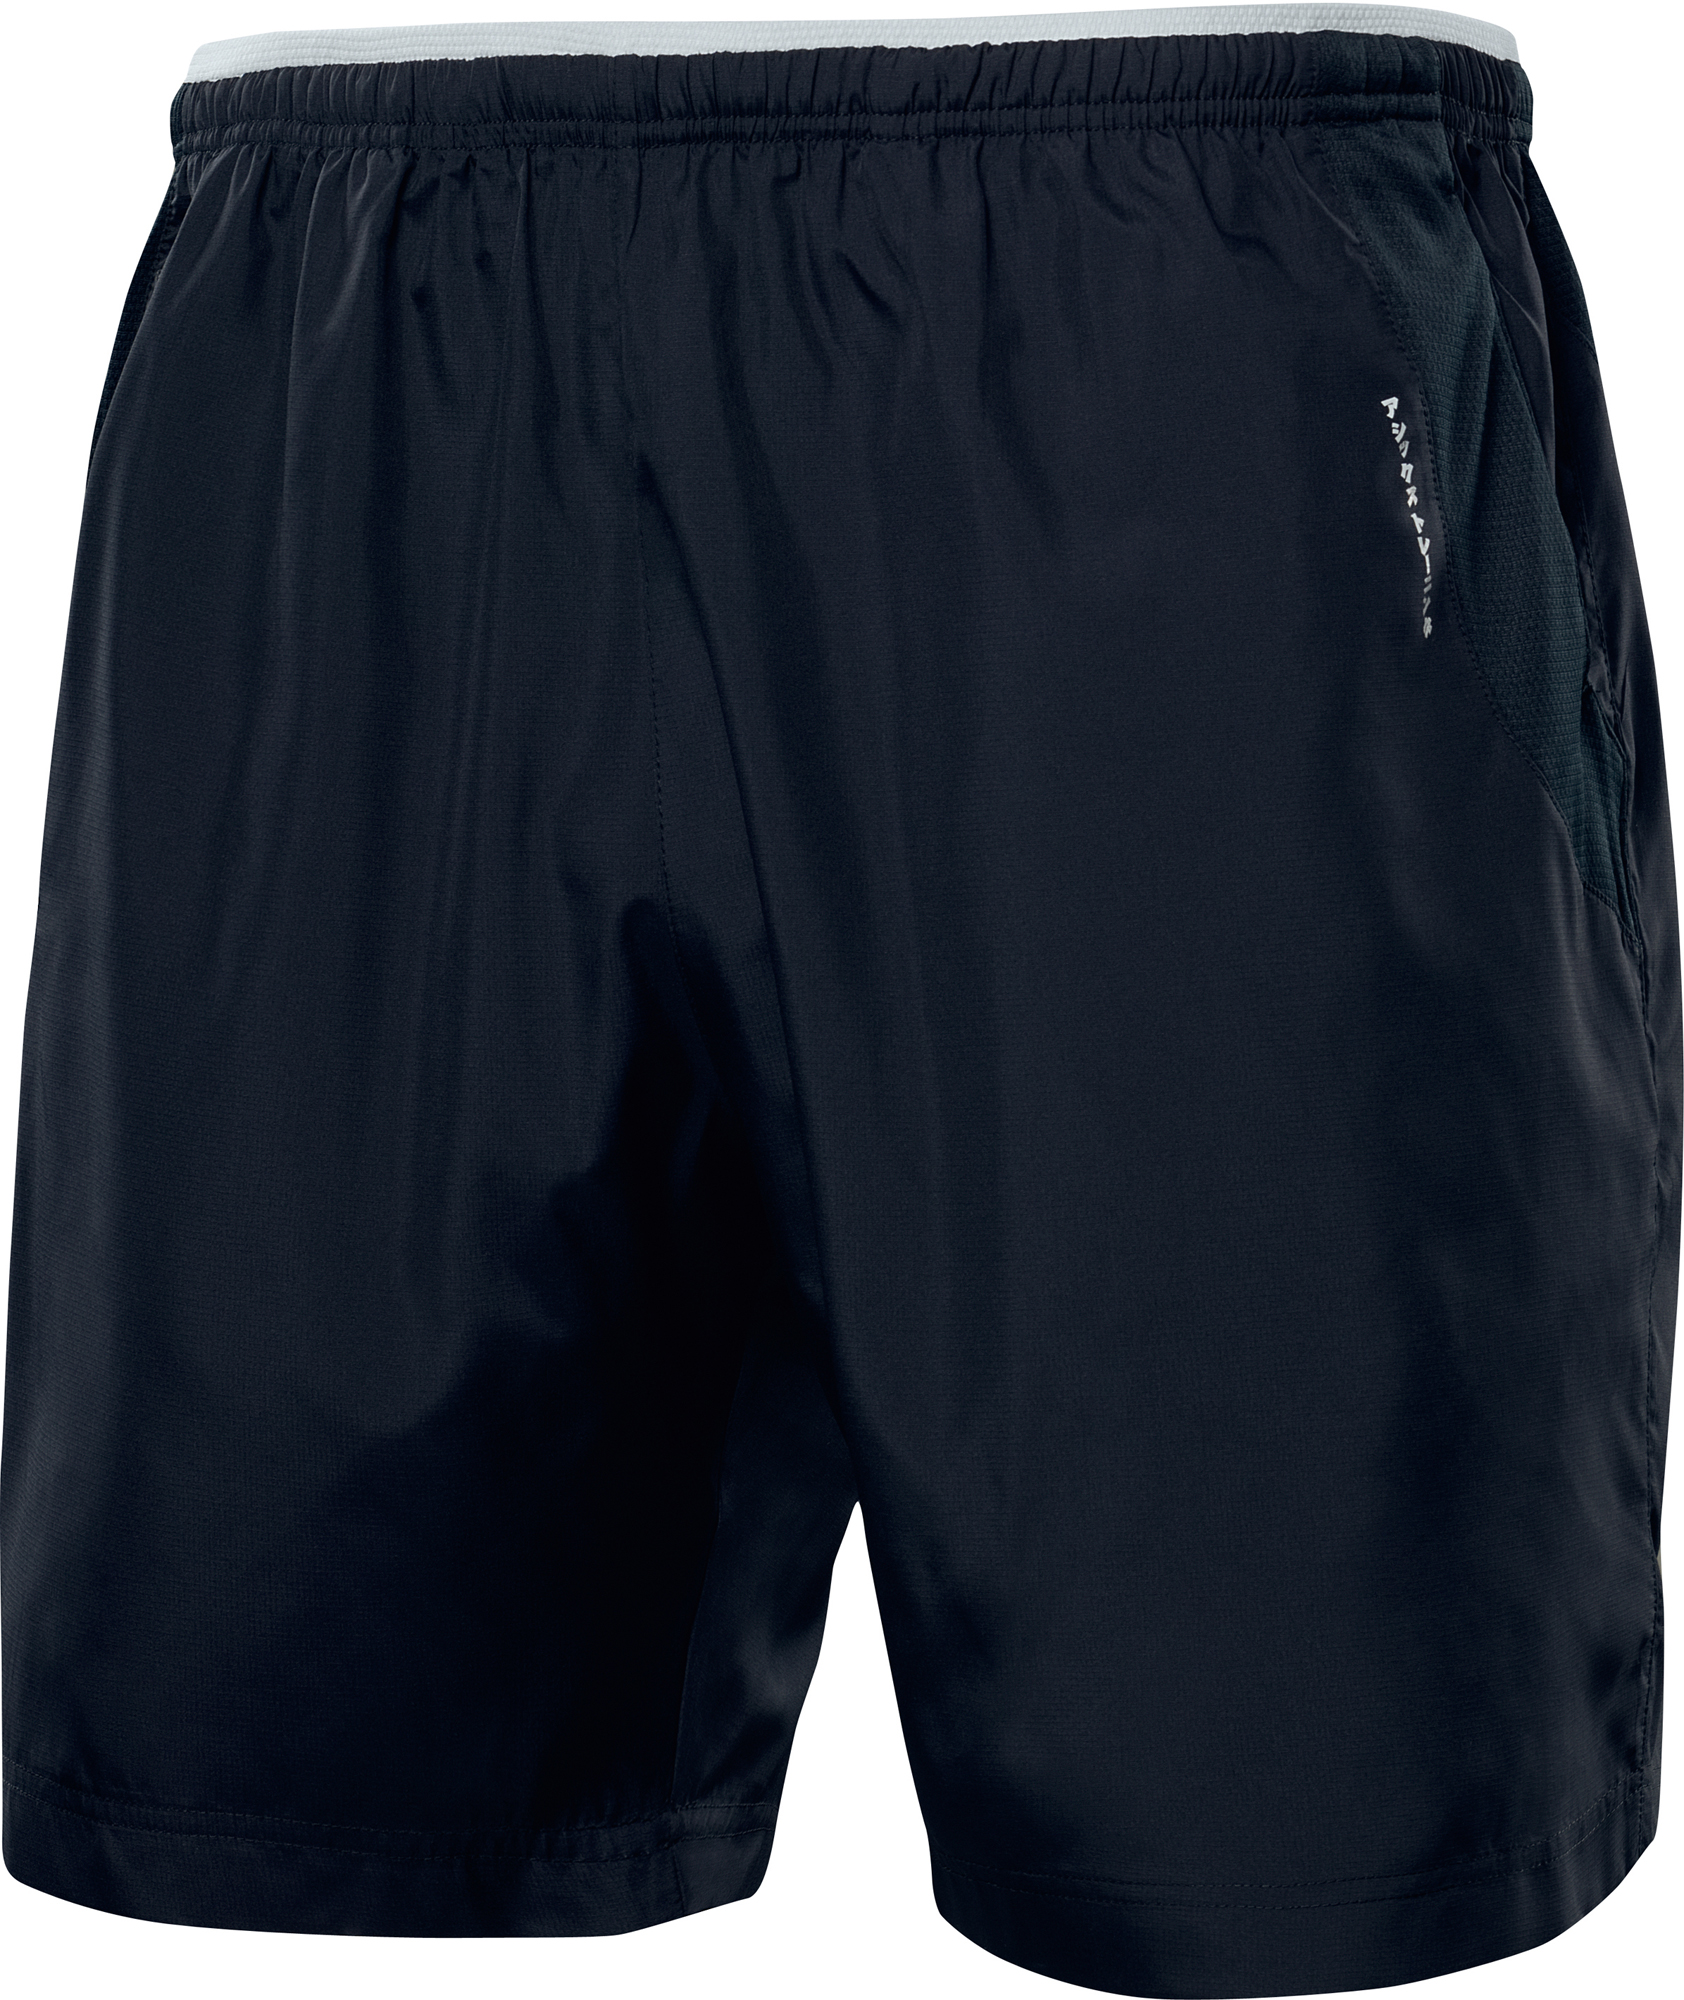 asics motion dry shorts